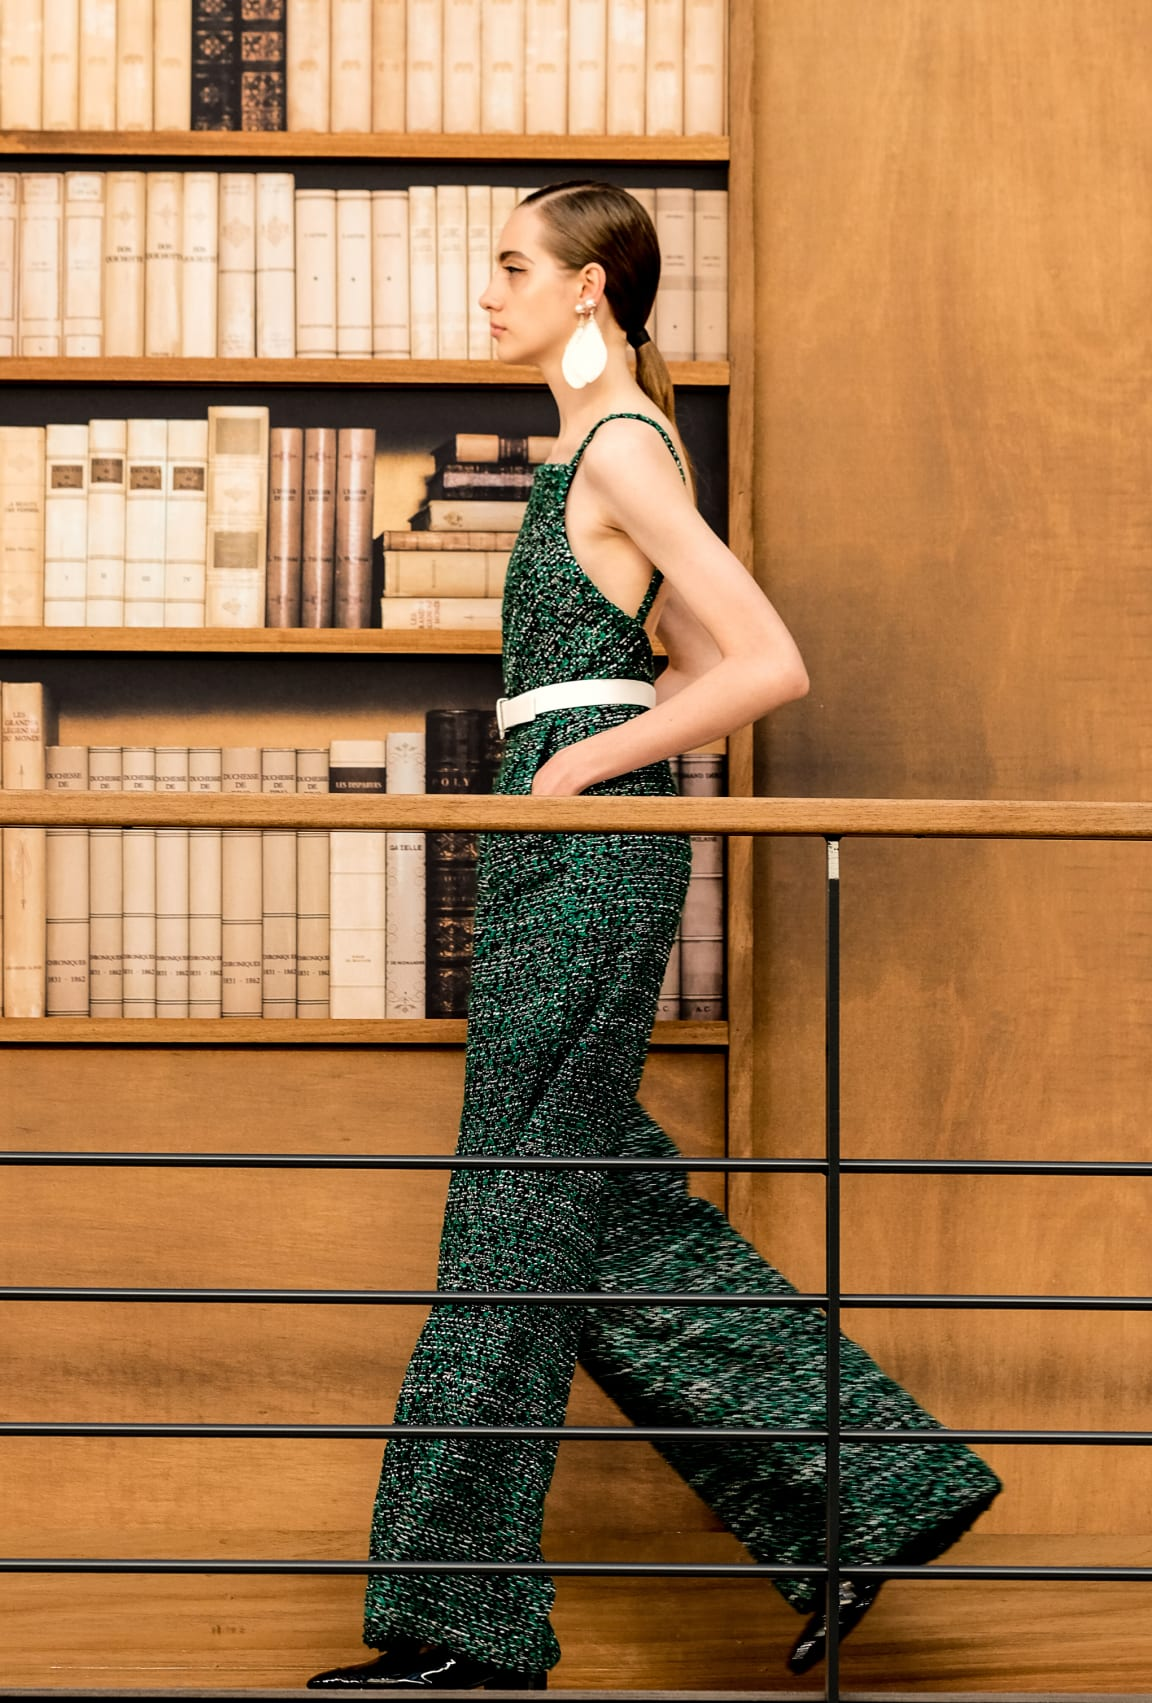 View 3 - Look 10 - Fall-Winter 2019/20 Haute-Couture - see full sized version